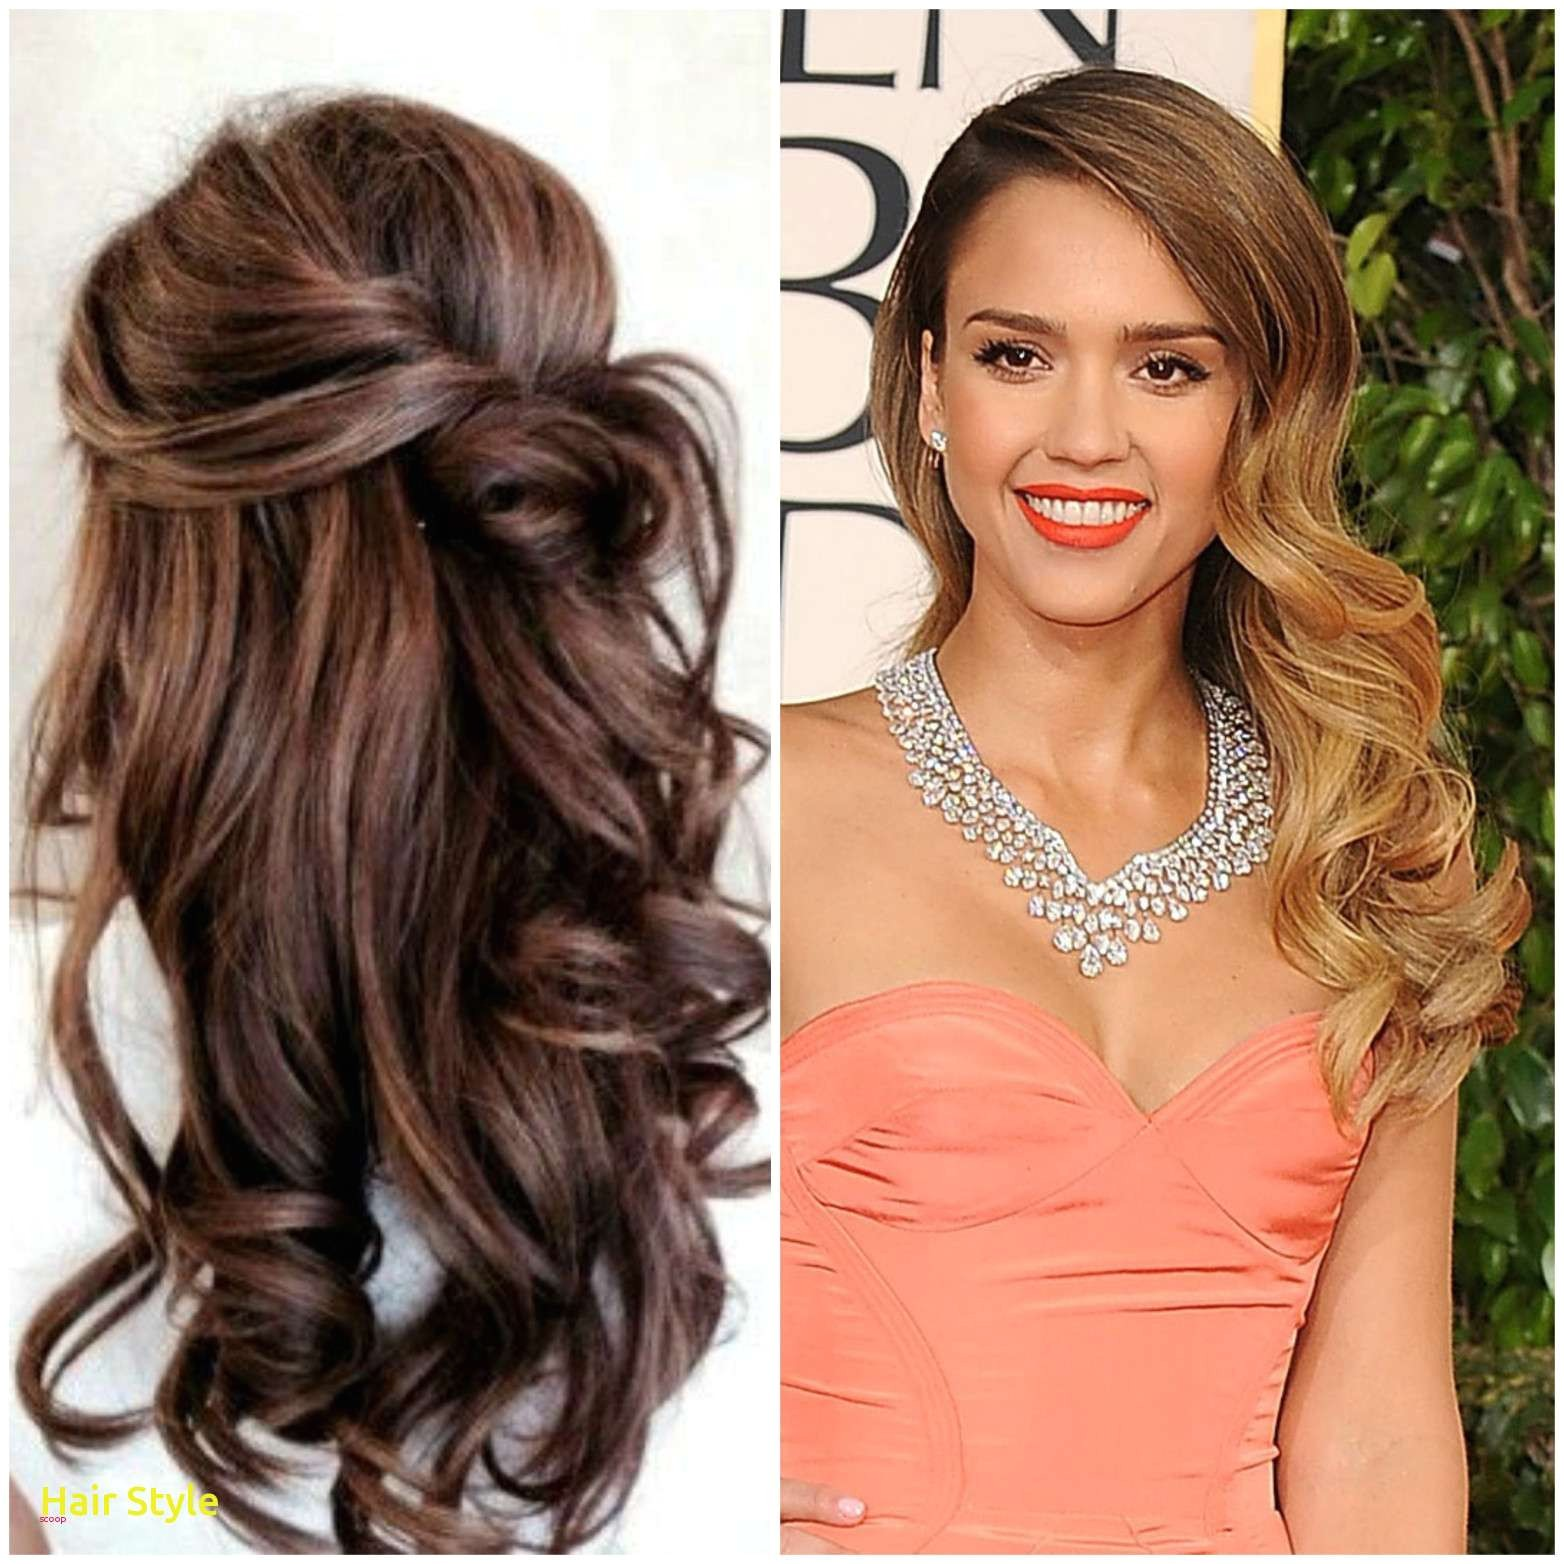 recent inspirational hairstyles for long hair 2015 luxury i pinimg 1200x 0d inspirational coloring for hair 29 terrific girl hairstyles architecture best